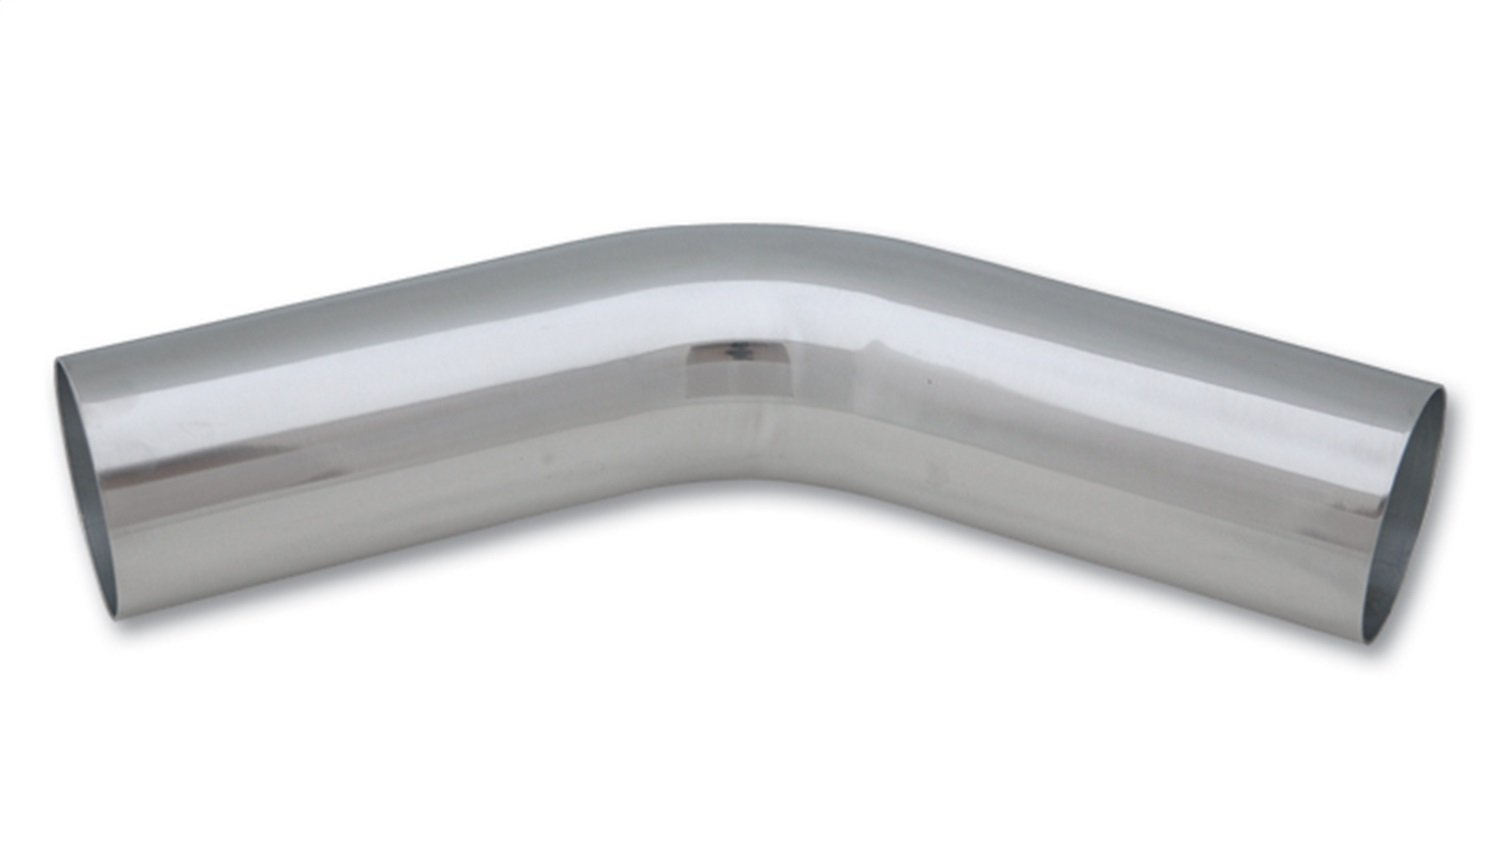 Vibrant 2890 Polished Aluminum 45 Degree Bend VIB2890